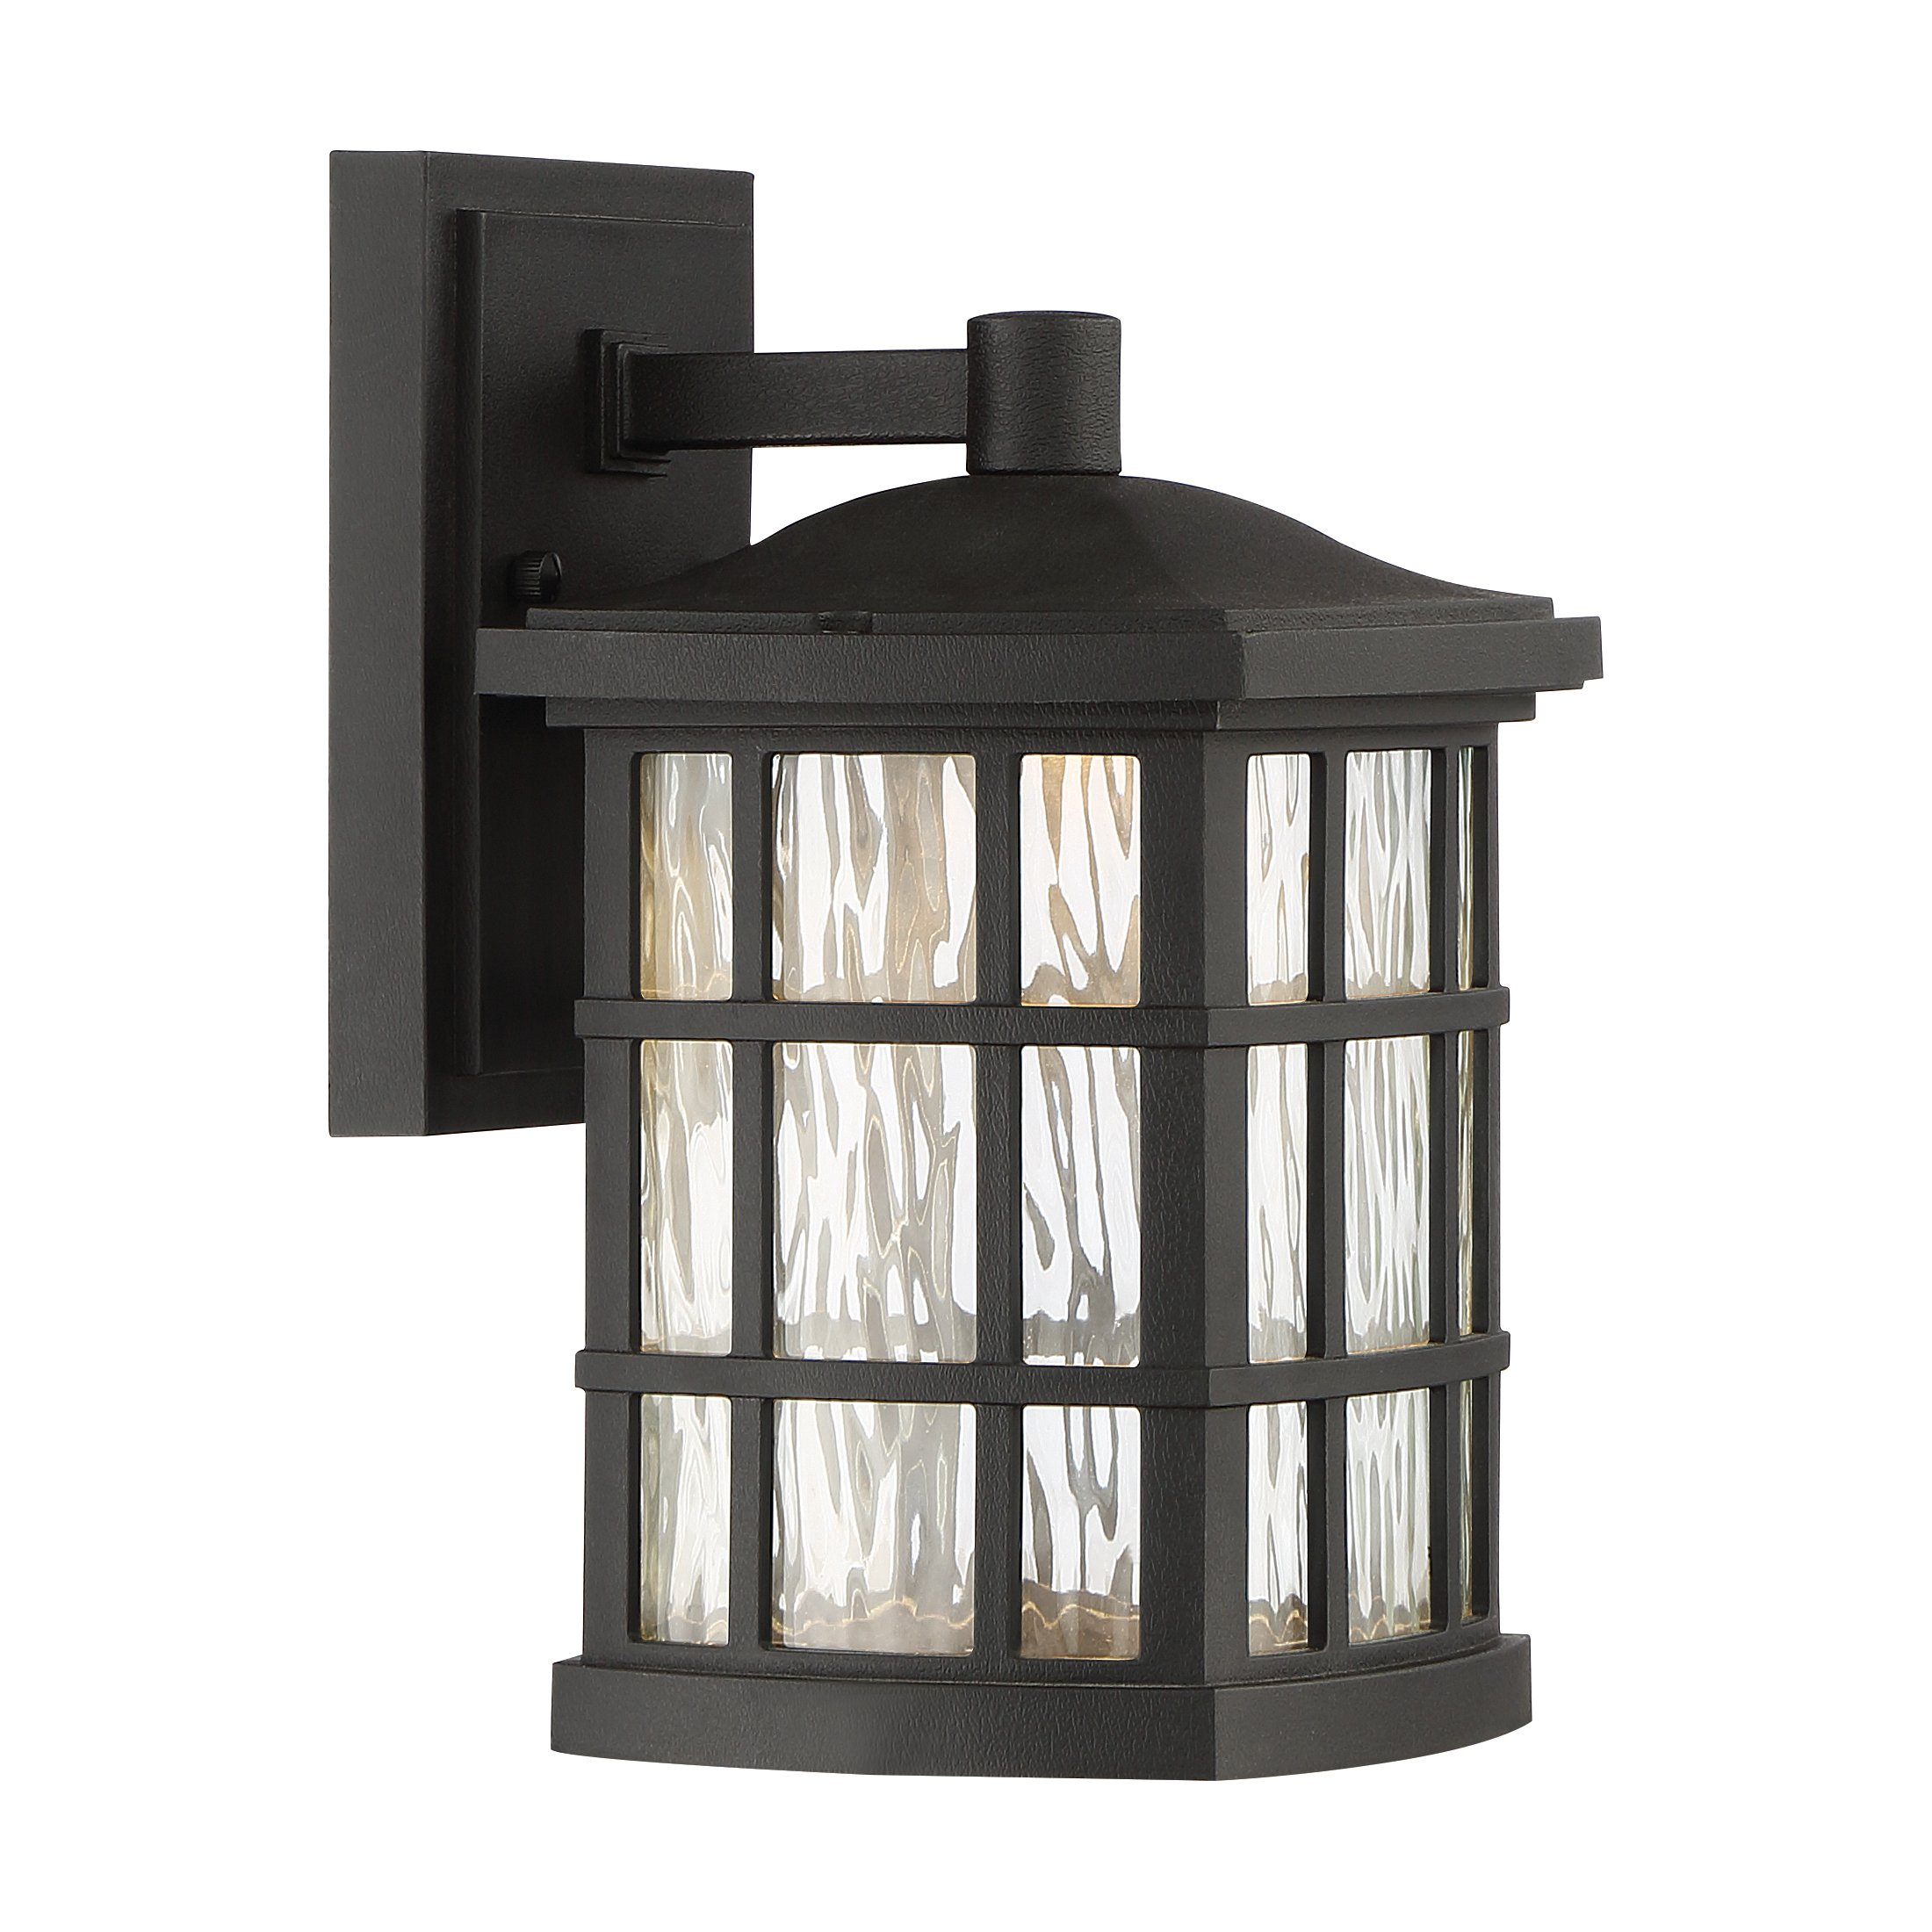 Quoizel SNNL8406K LED Outdoor Wall Lantern by Quoizel